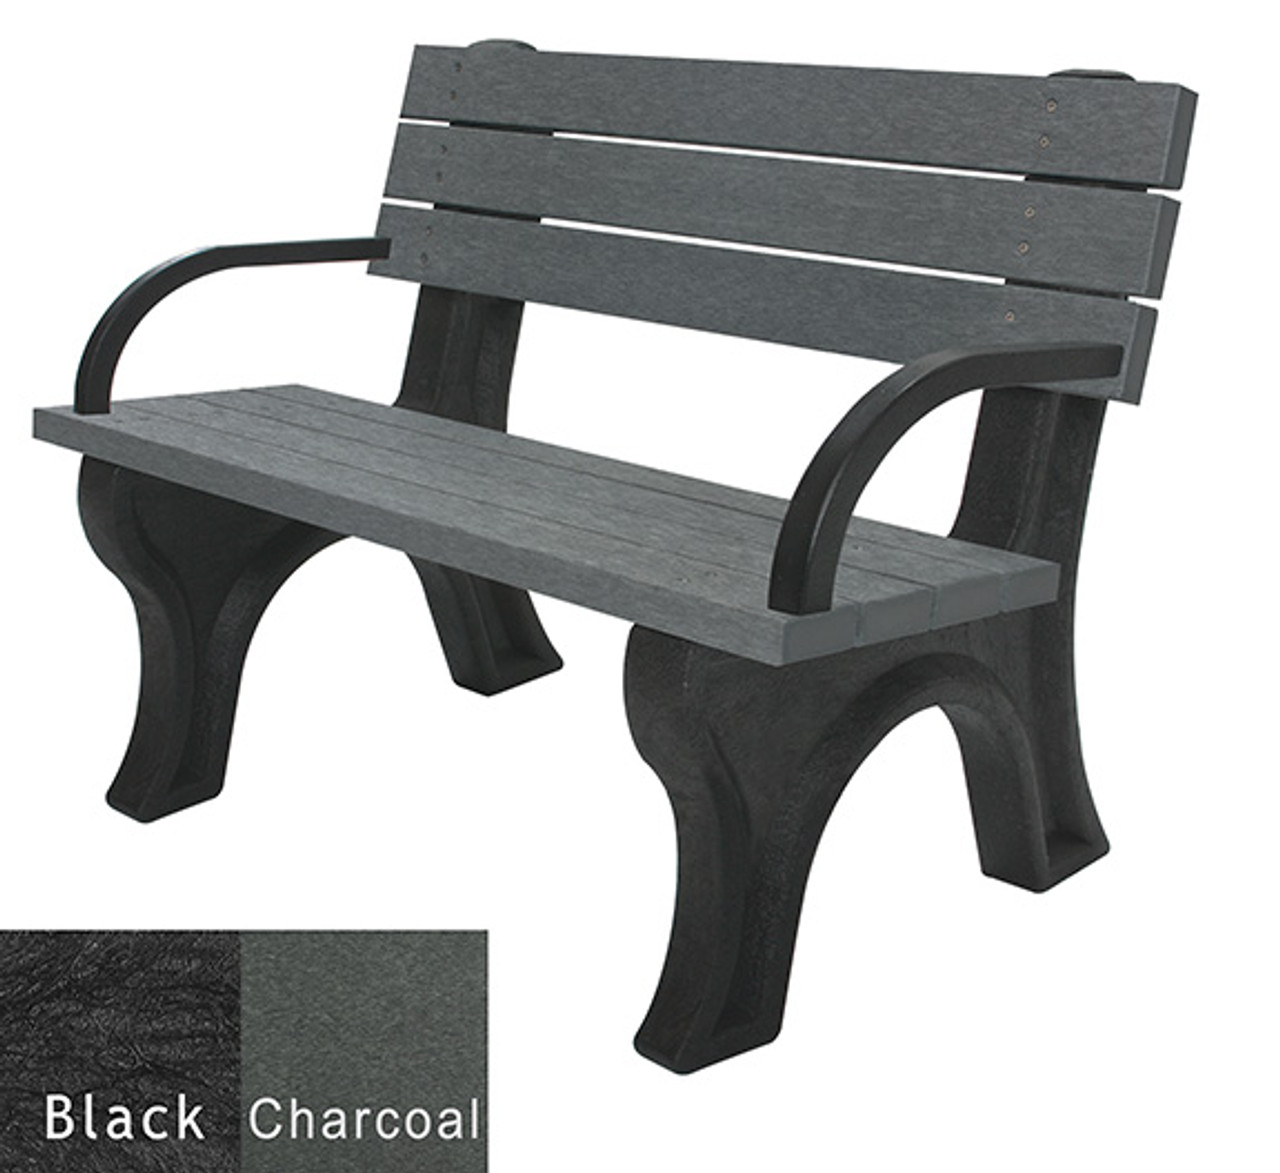 Black and Charcoal